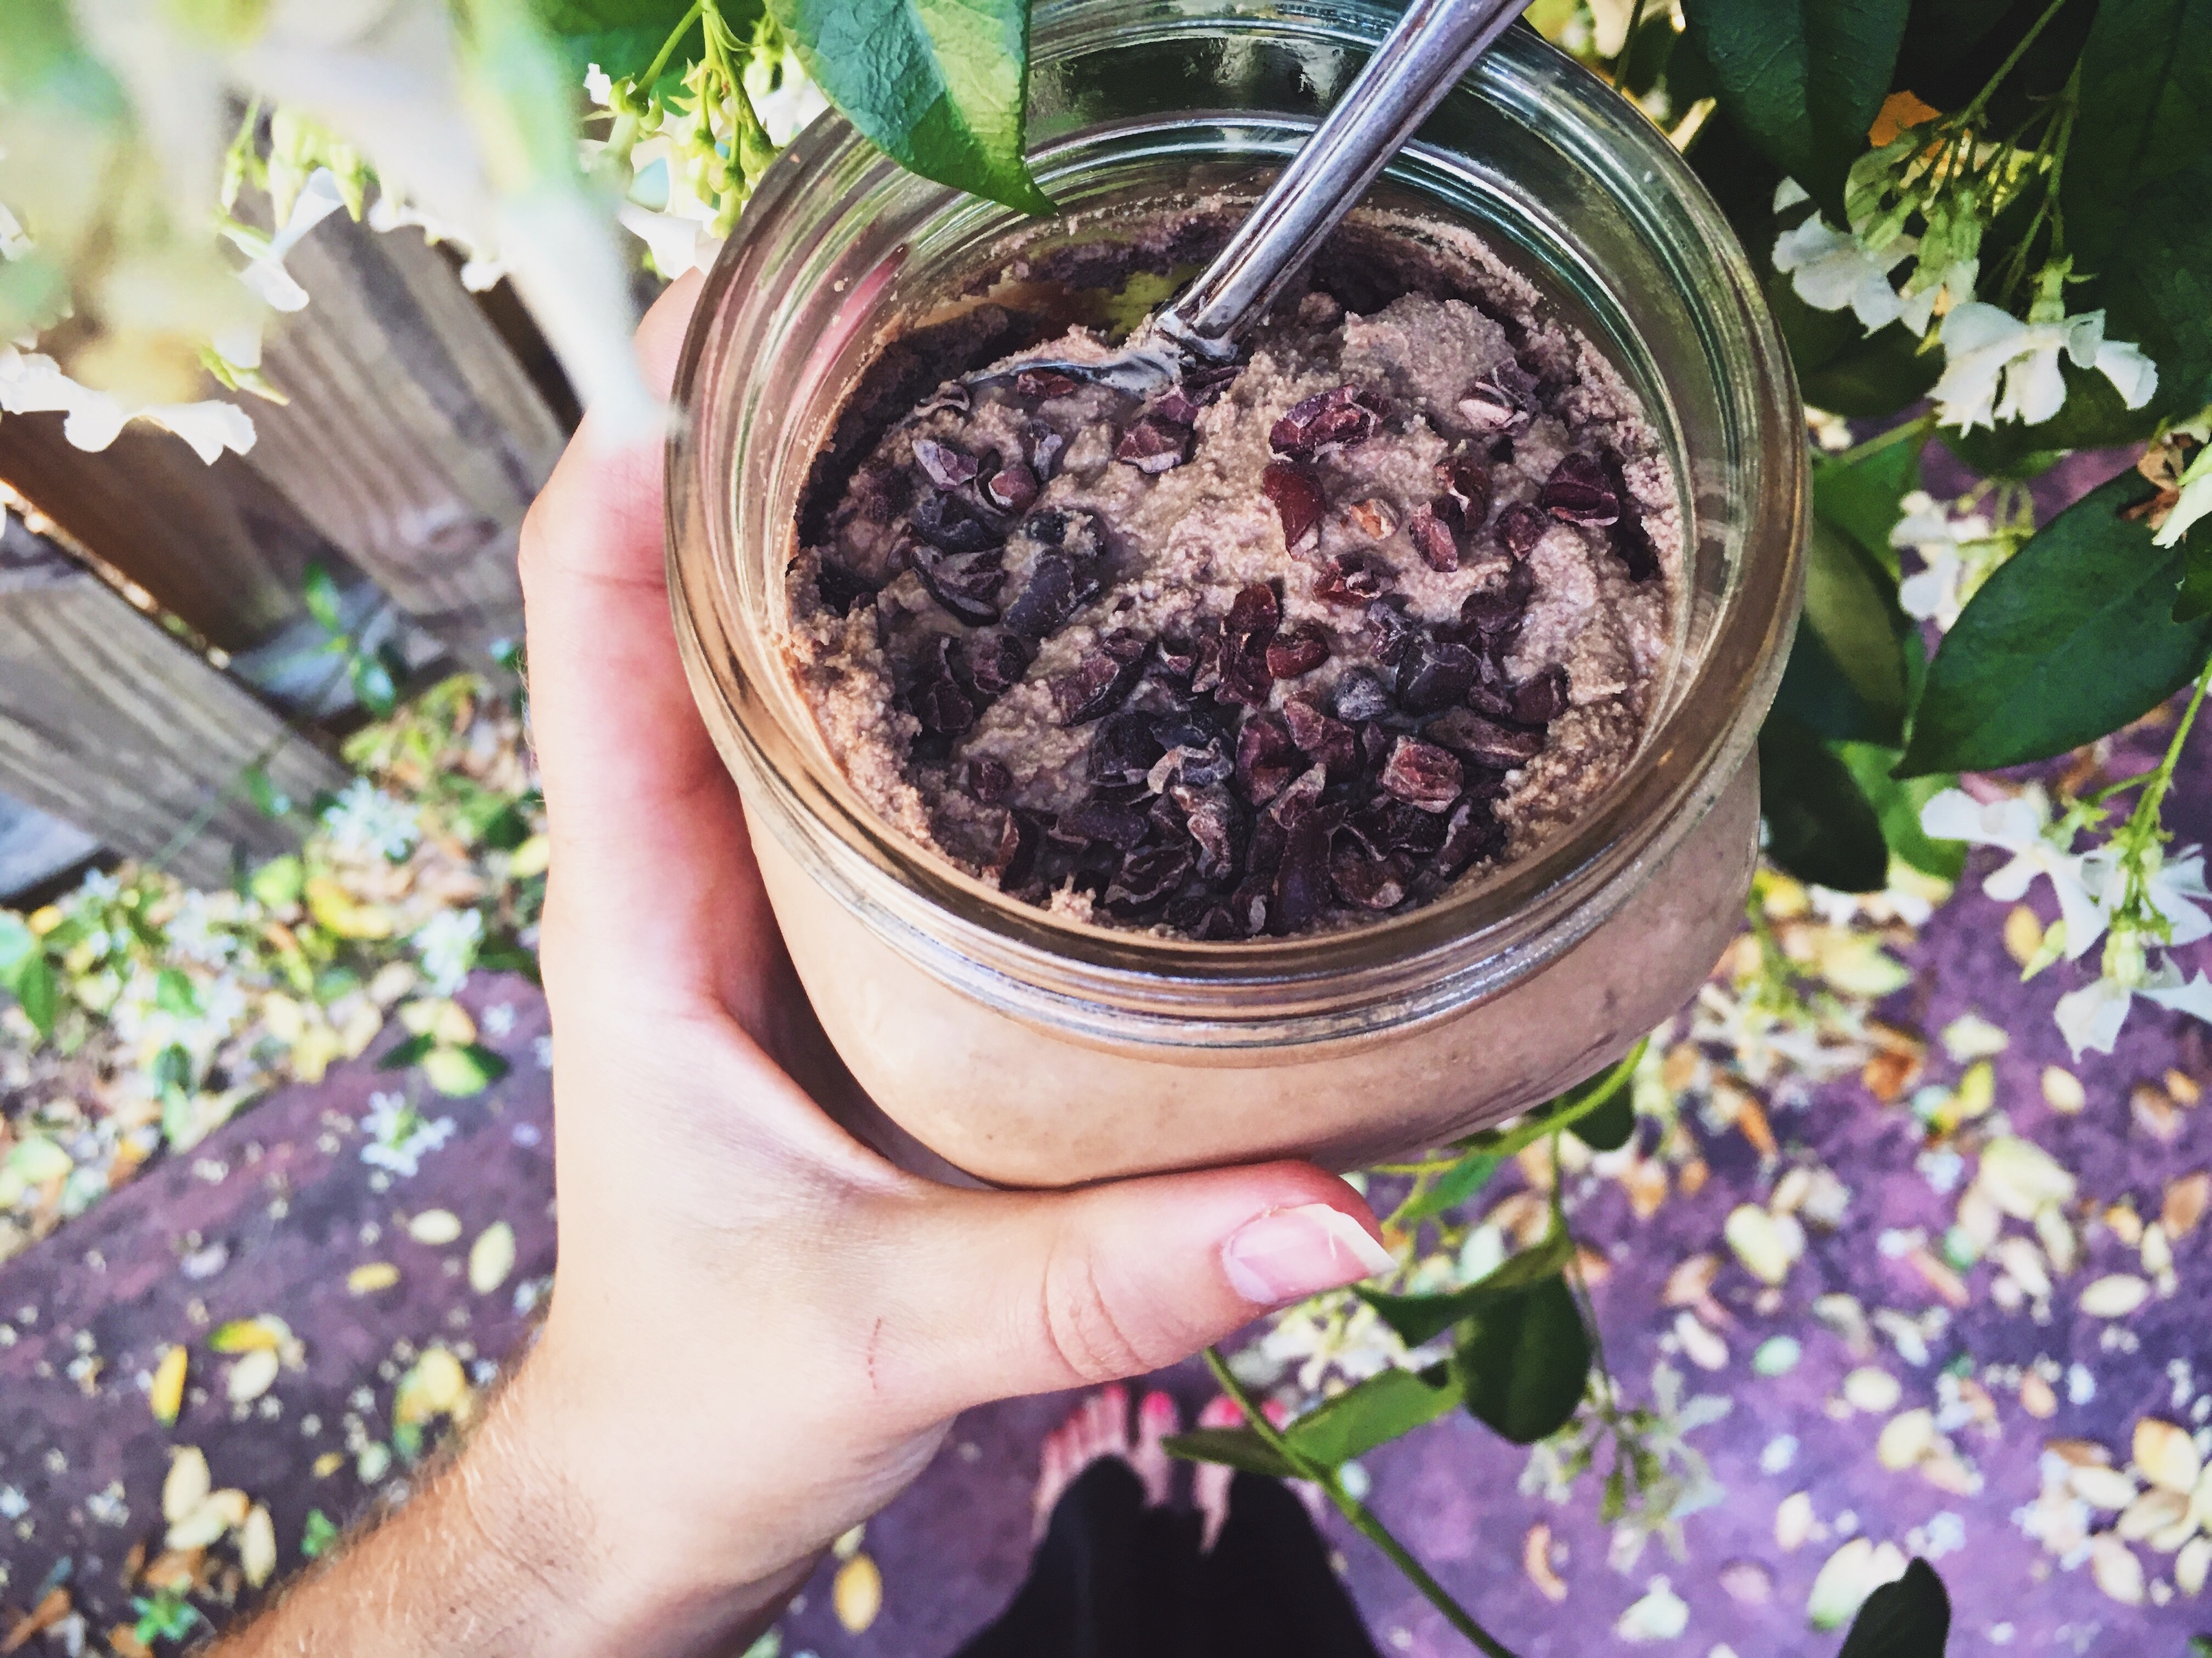 Vegan Chocolate Mousse with Stevia